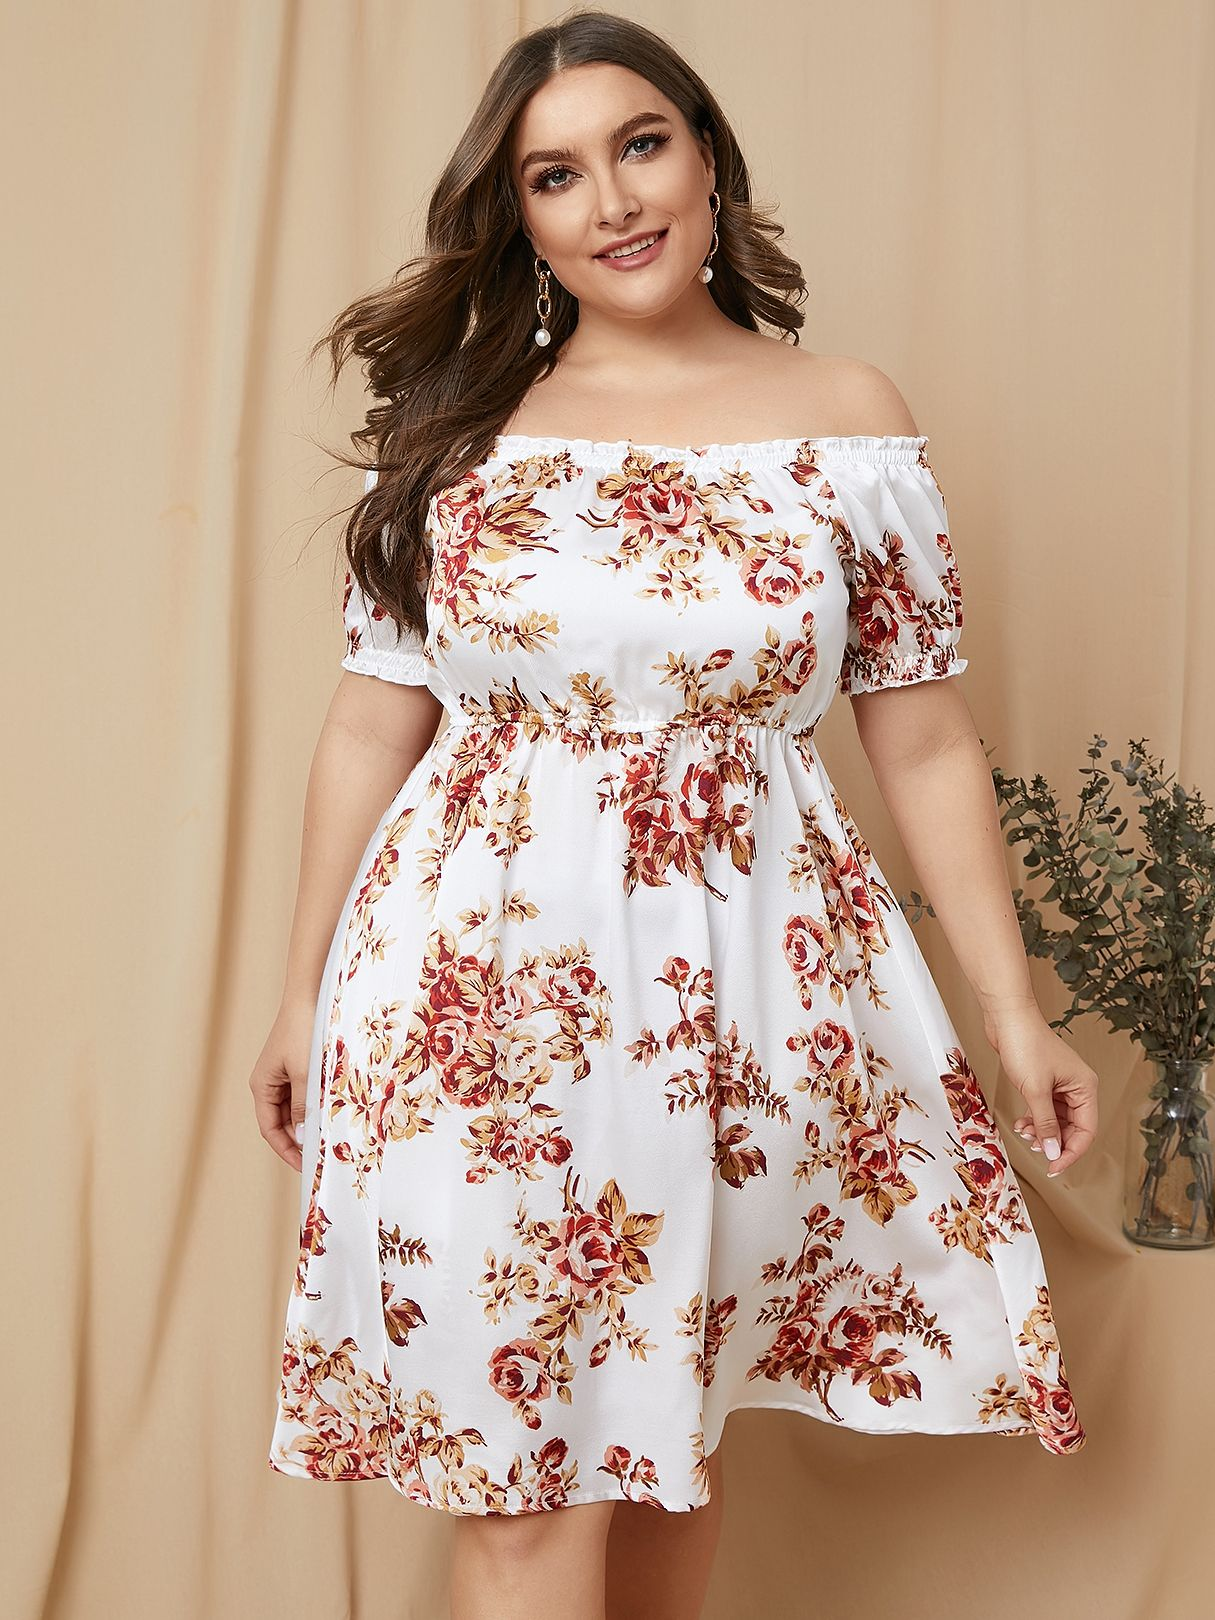 Extra 15 Your First Order On Yonis App Plus Size Summer Fashion Plus Size Outfits Mini Dresses Summer [ 1620 x 1215 Pixel ]